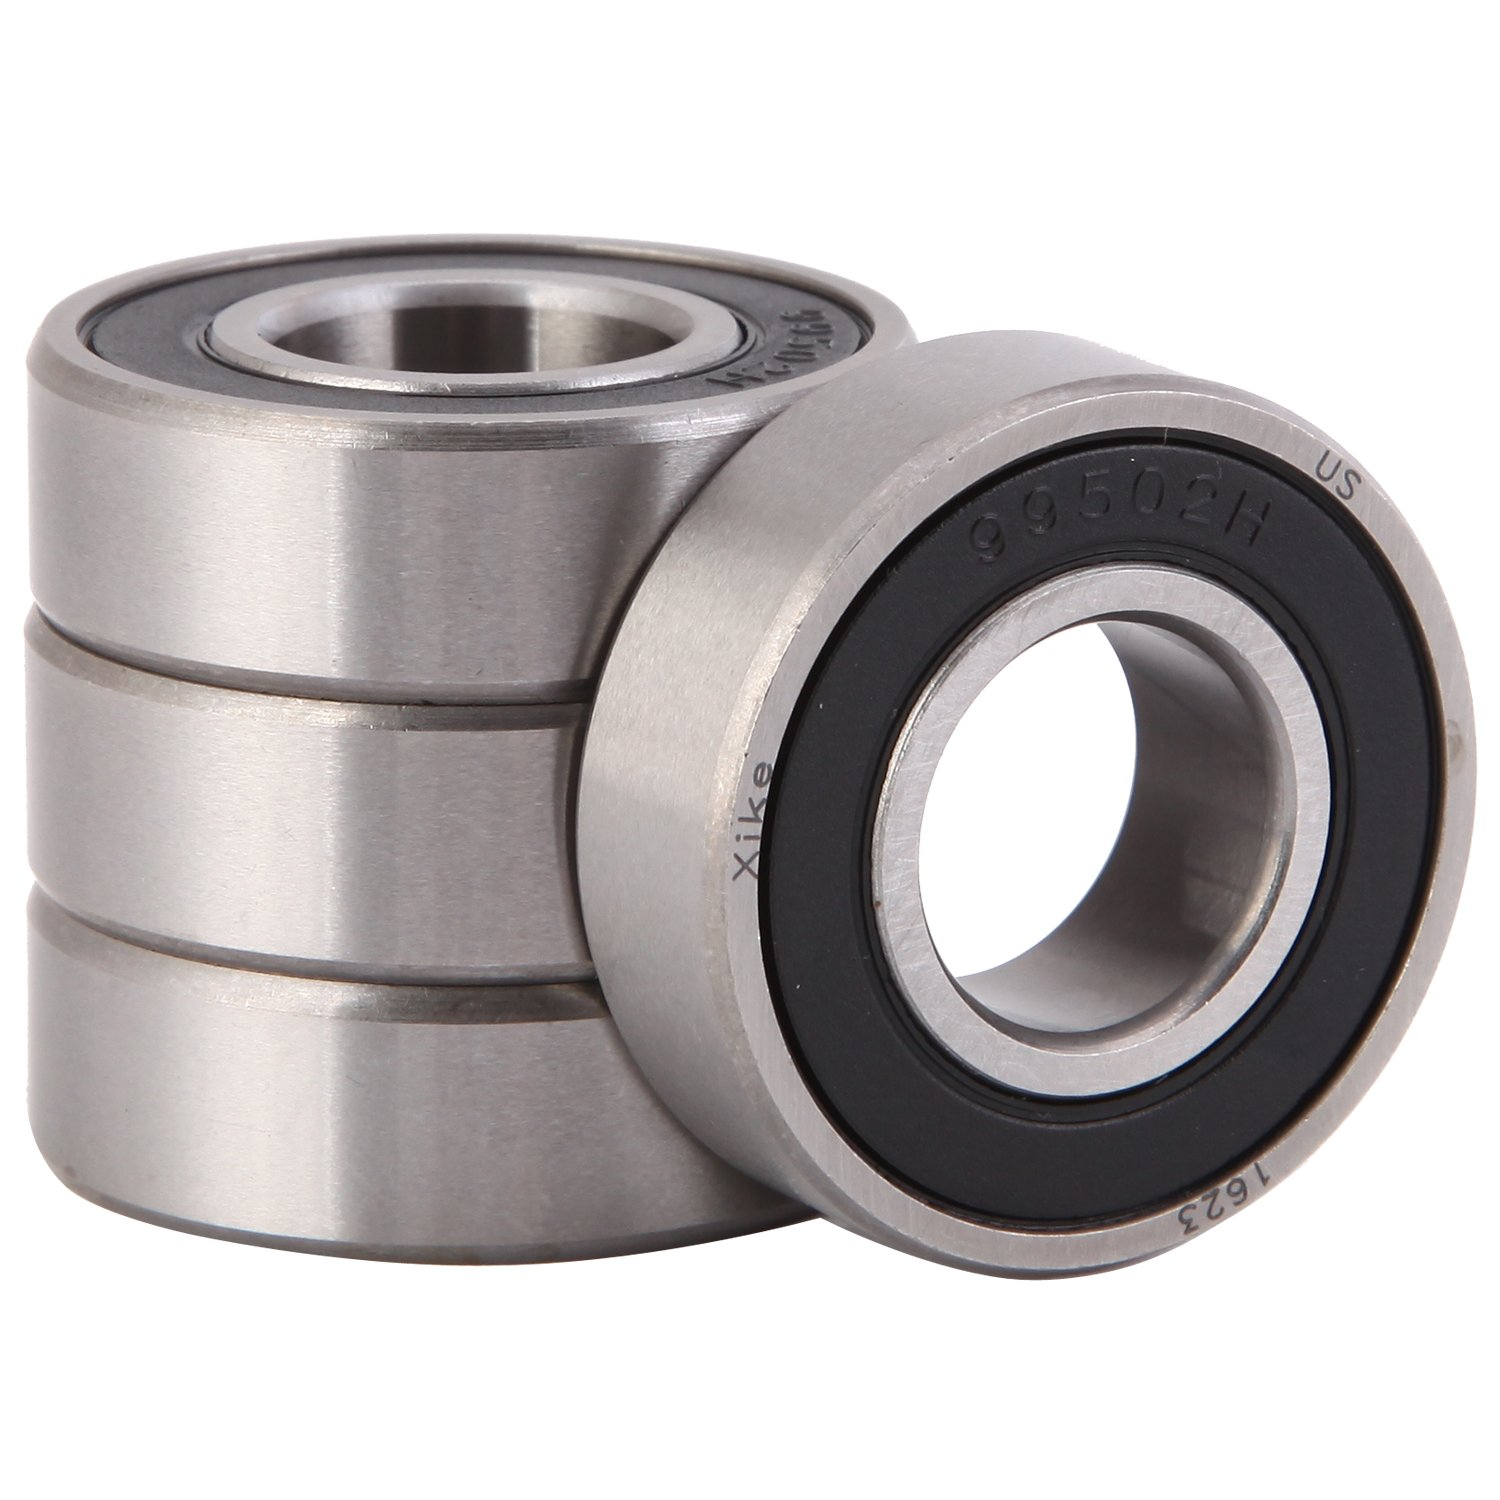 XiKe 4 Pack 1623-2RS Bearings 5/8 x 1-3/8 x 7/16 Inch, Stable Performance and Cost-Effective, Double Seal and Pre-Lubricated, Deep Groove Ball Bearings.